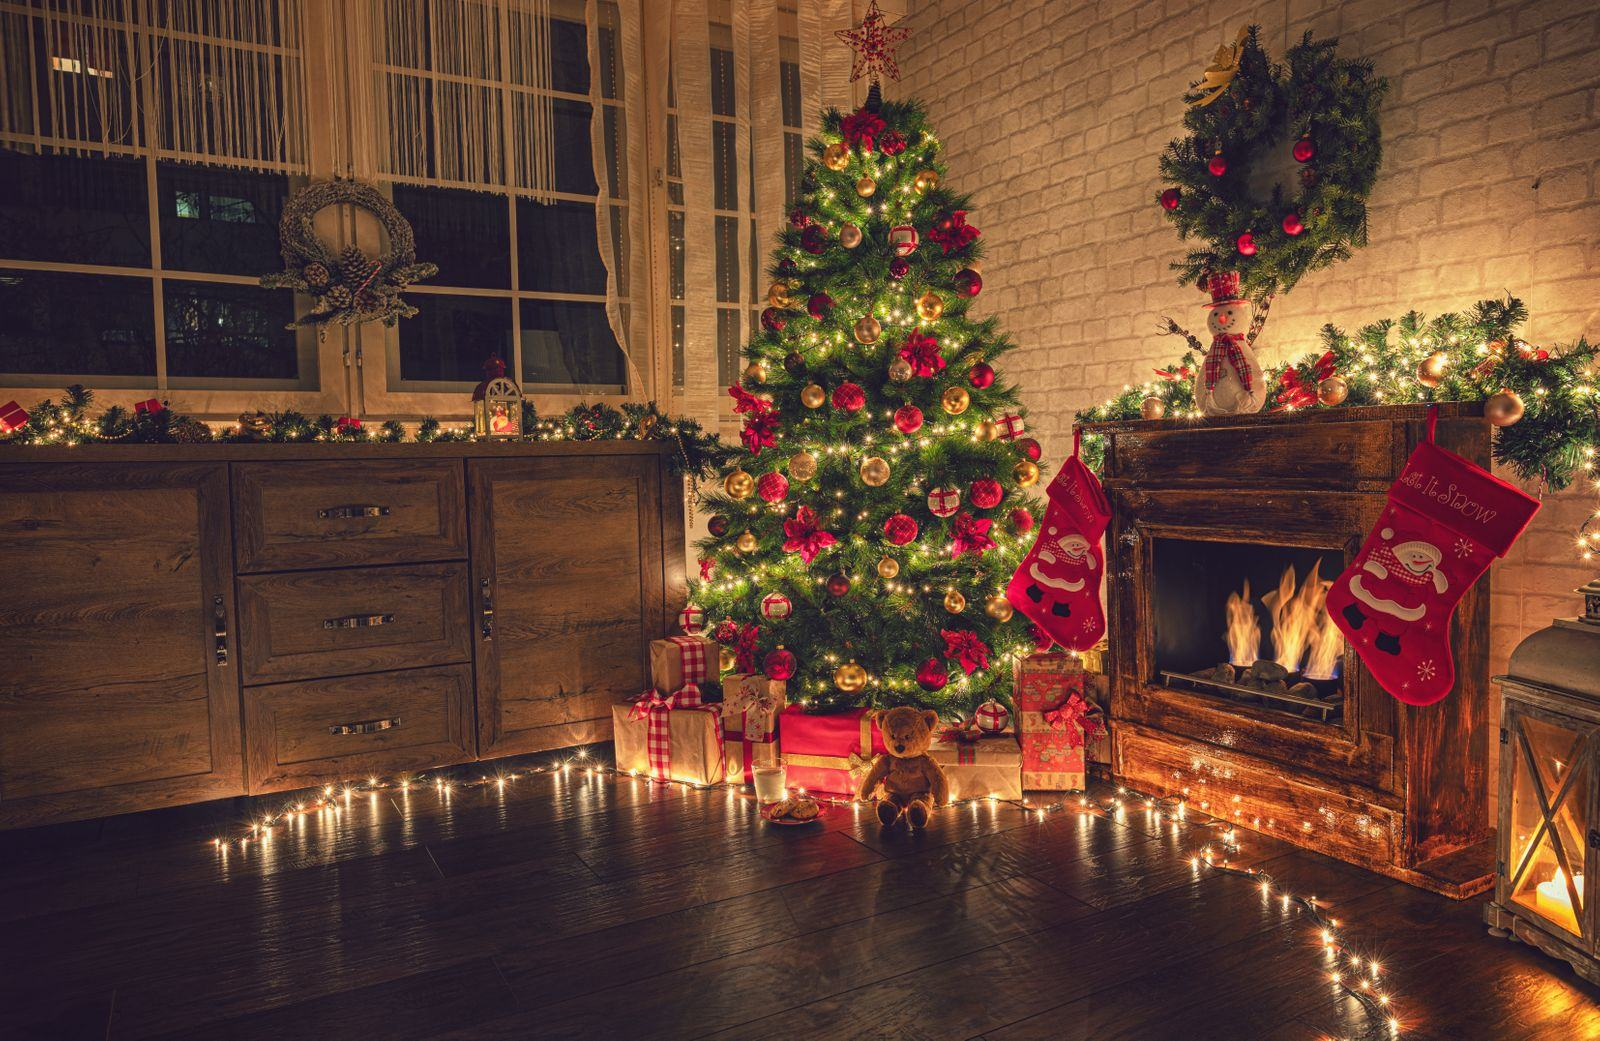 Christmas 2020 Will Be Very Different — A Great Reason to Enhance Your Holiday Decor!